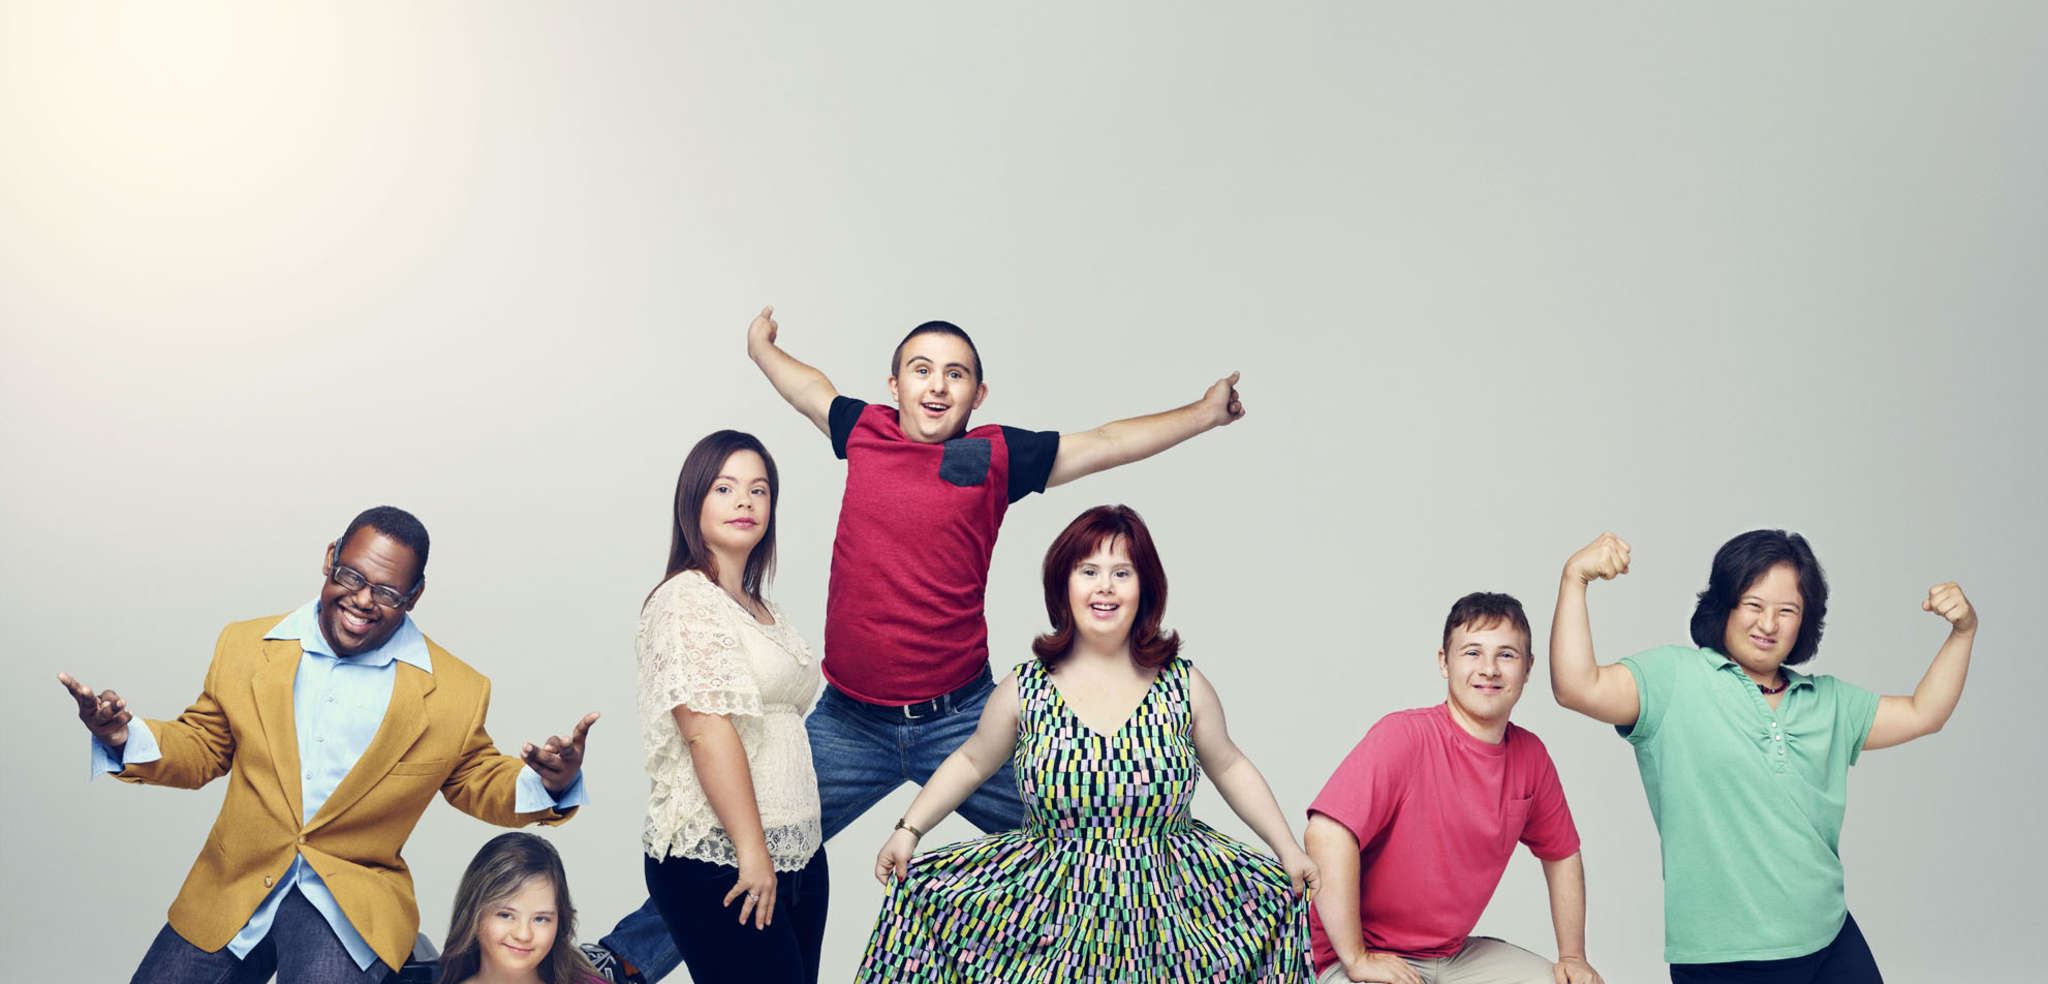 The stars of A&E´s docu-series all have one thing in common: They were born with Down syndrome.